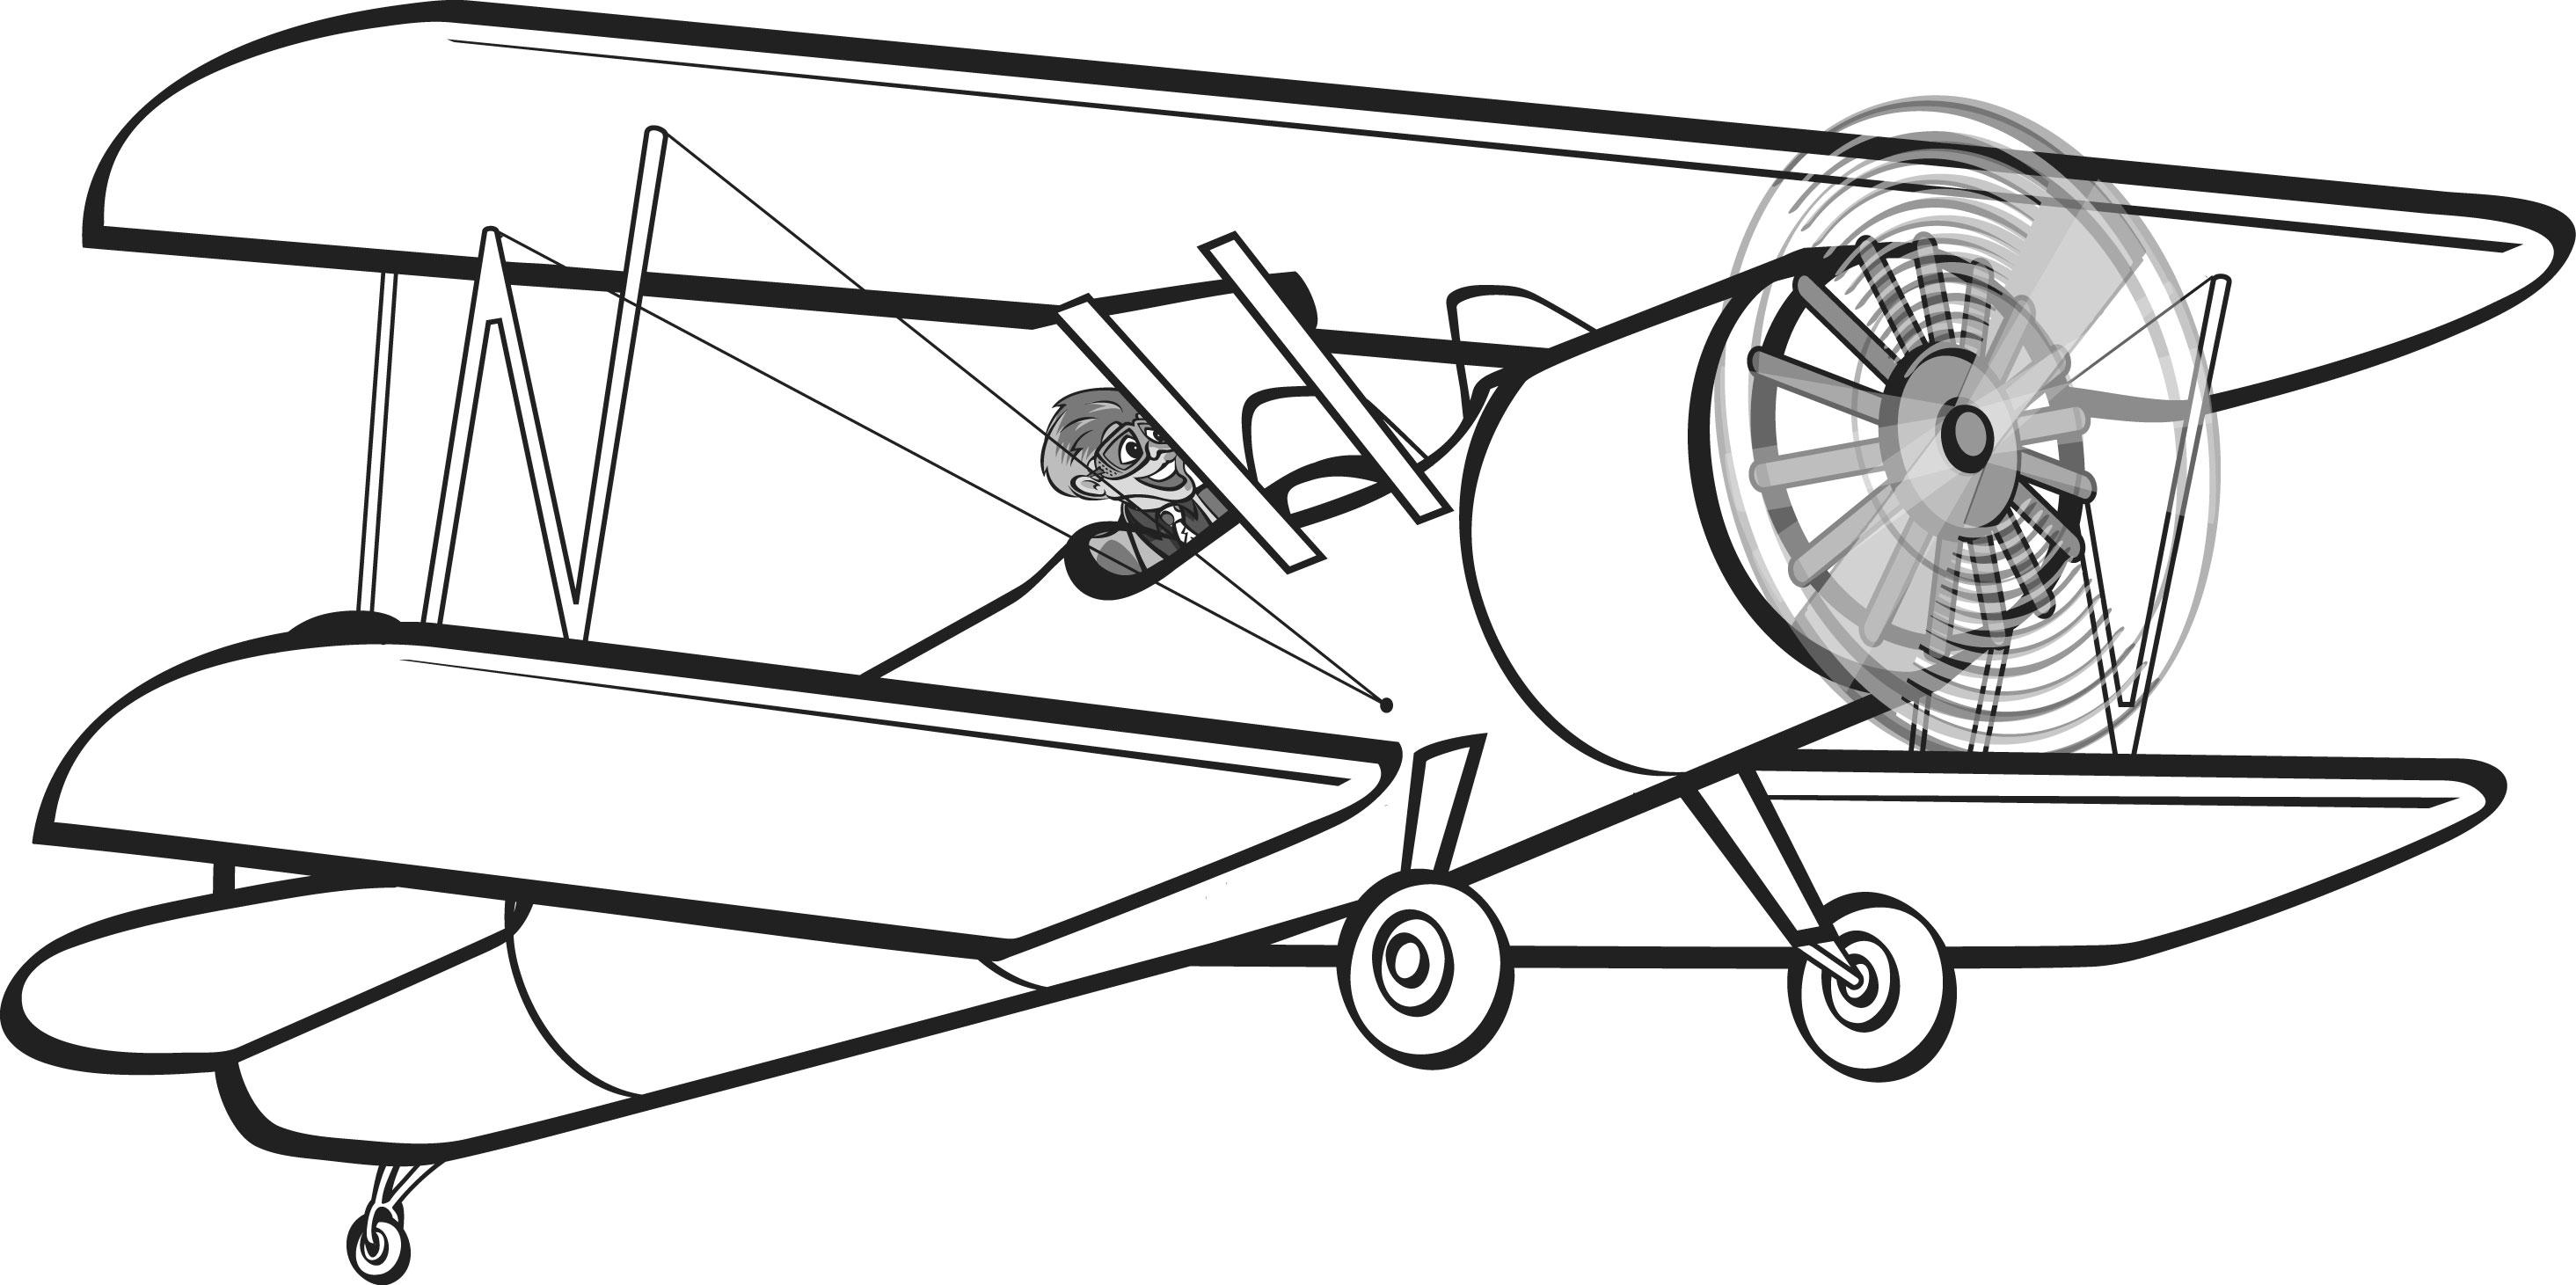 Image of Biplane Clipart #4592, Red Baron Aircraft Clipart.